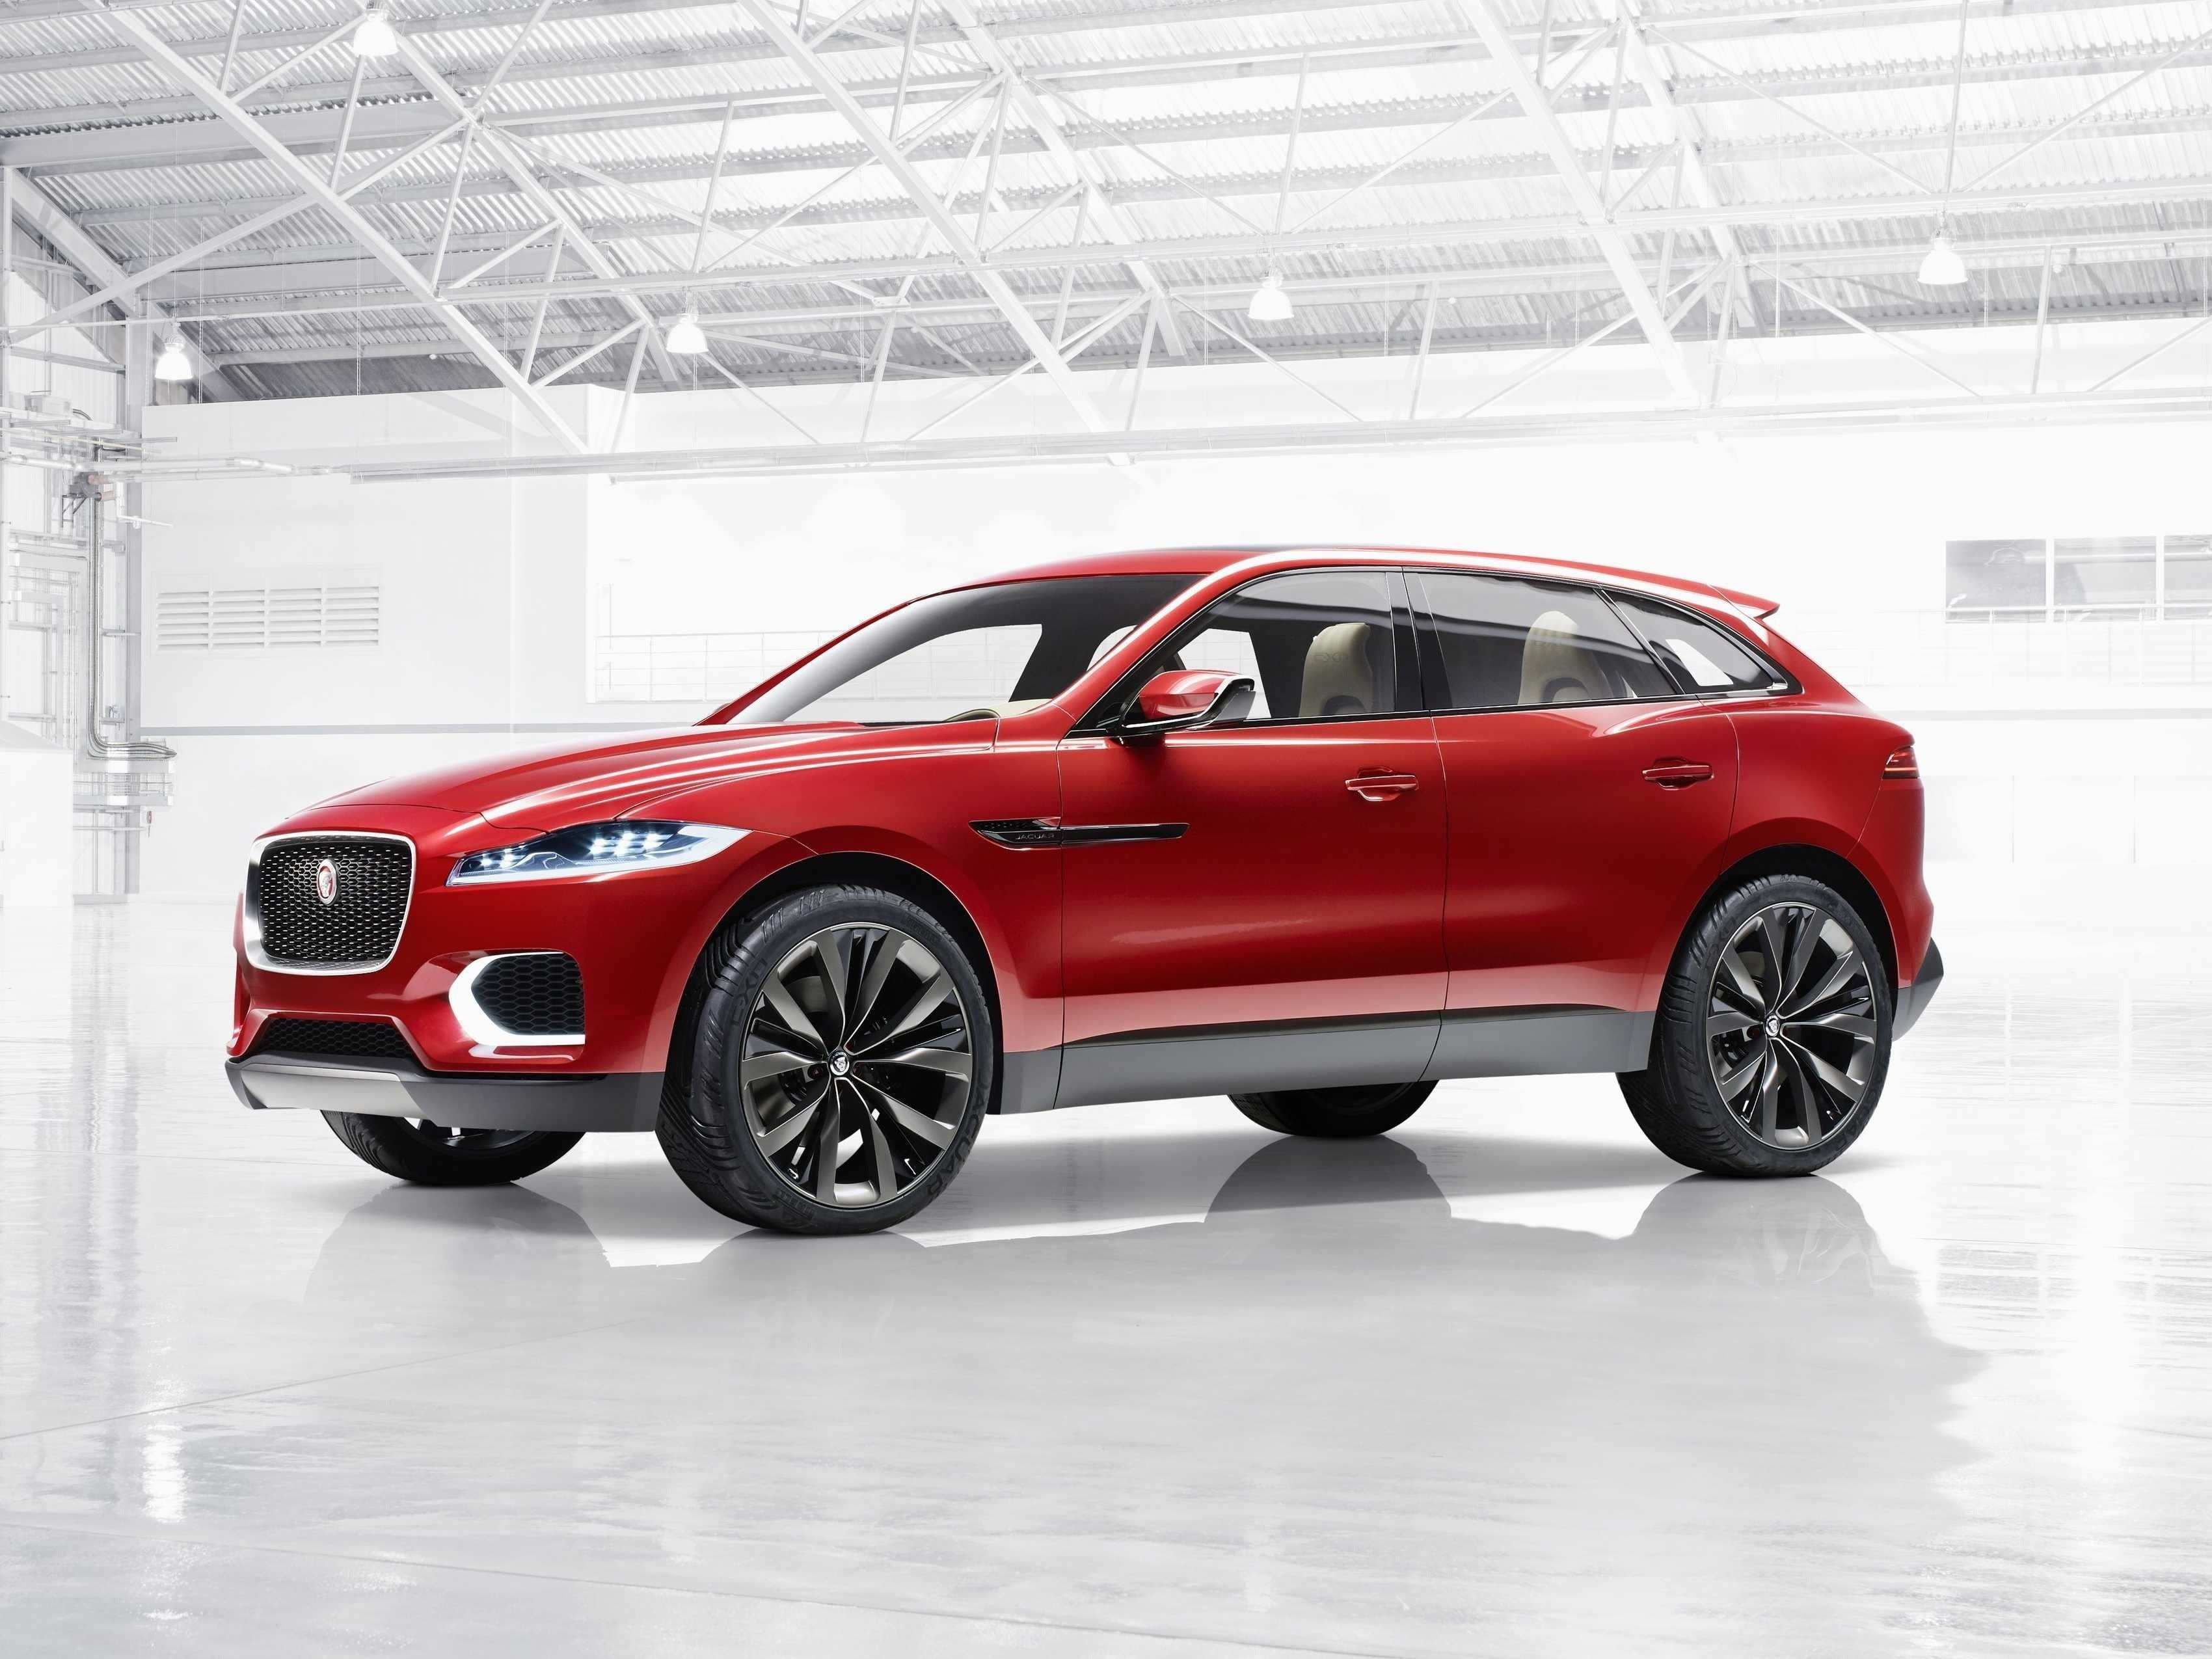 67 All New 2020 Jaguar C X17 Crossover Wallpaper with 2020 Jaguar C X17 Crossover